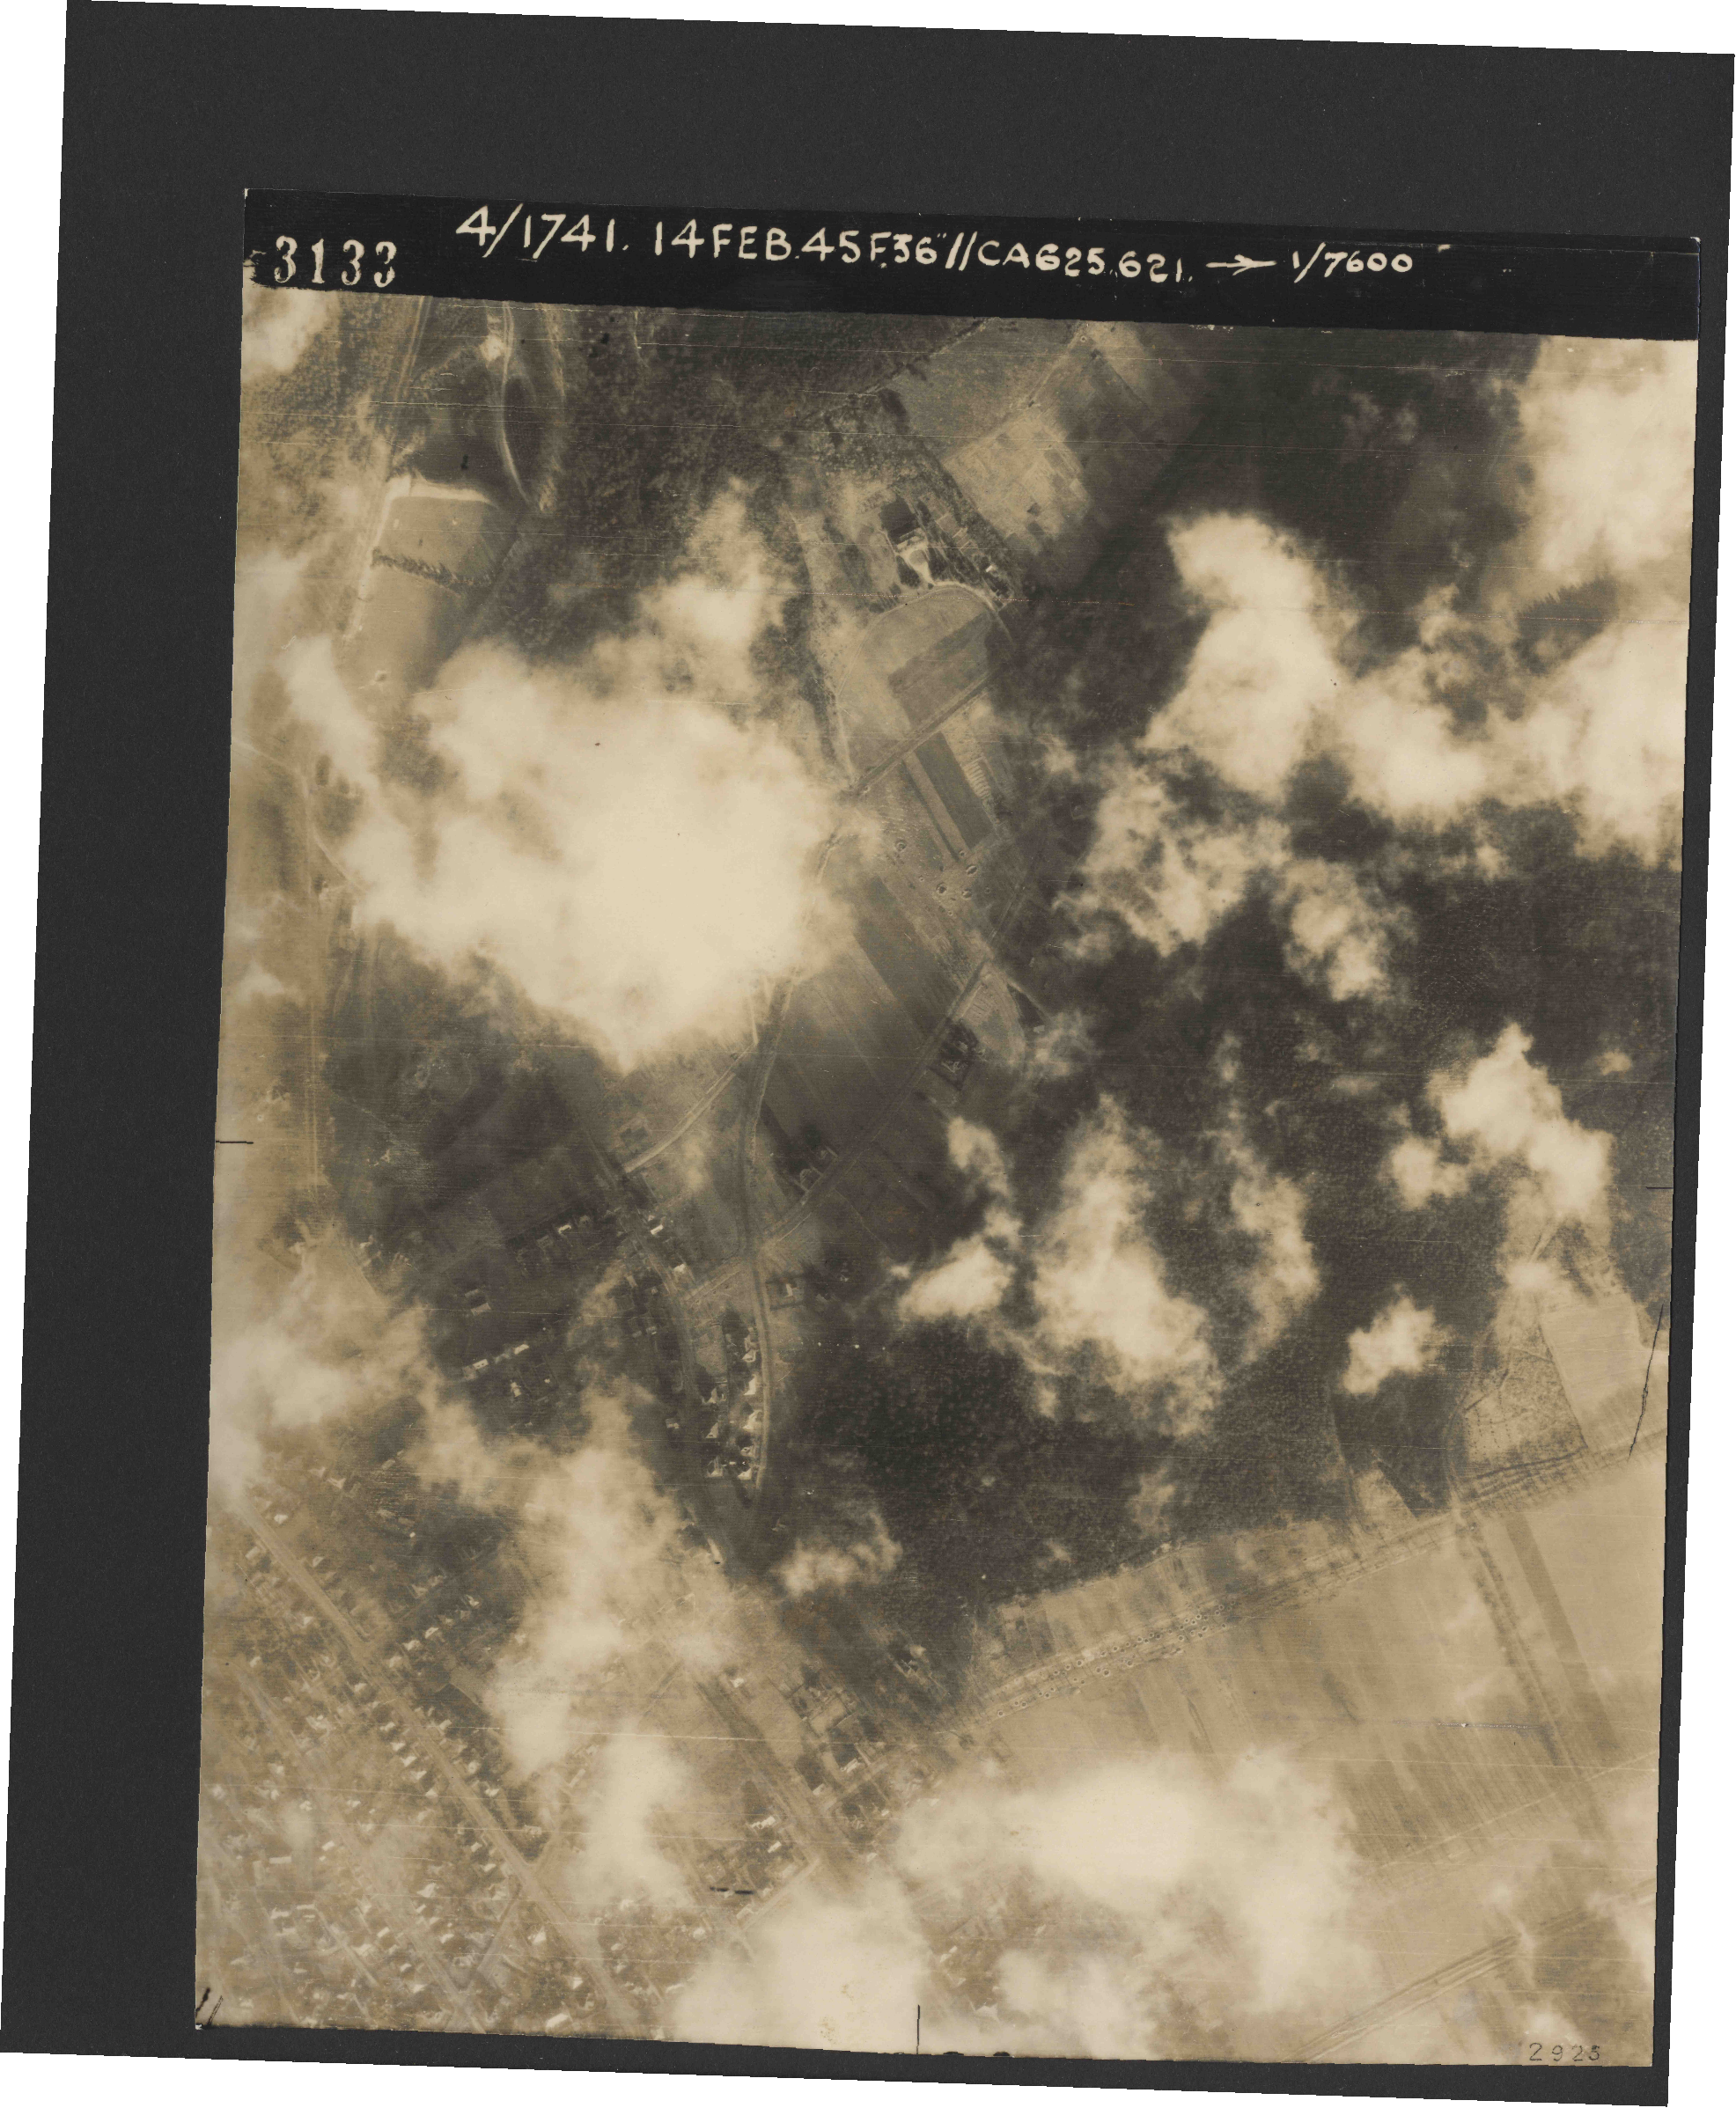 Collection RAF aerial photos 1940-1945 - flight 132, run 01, photo 3133